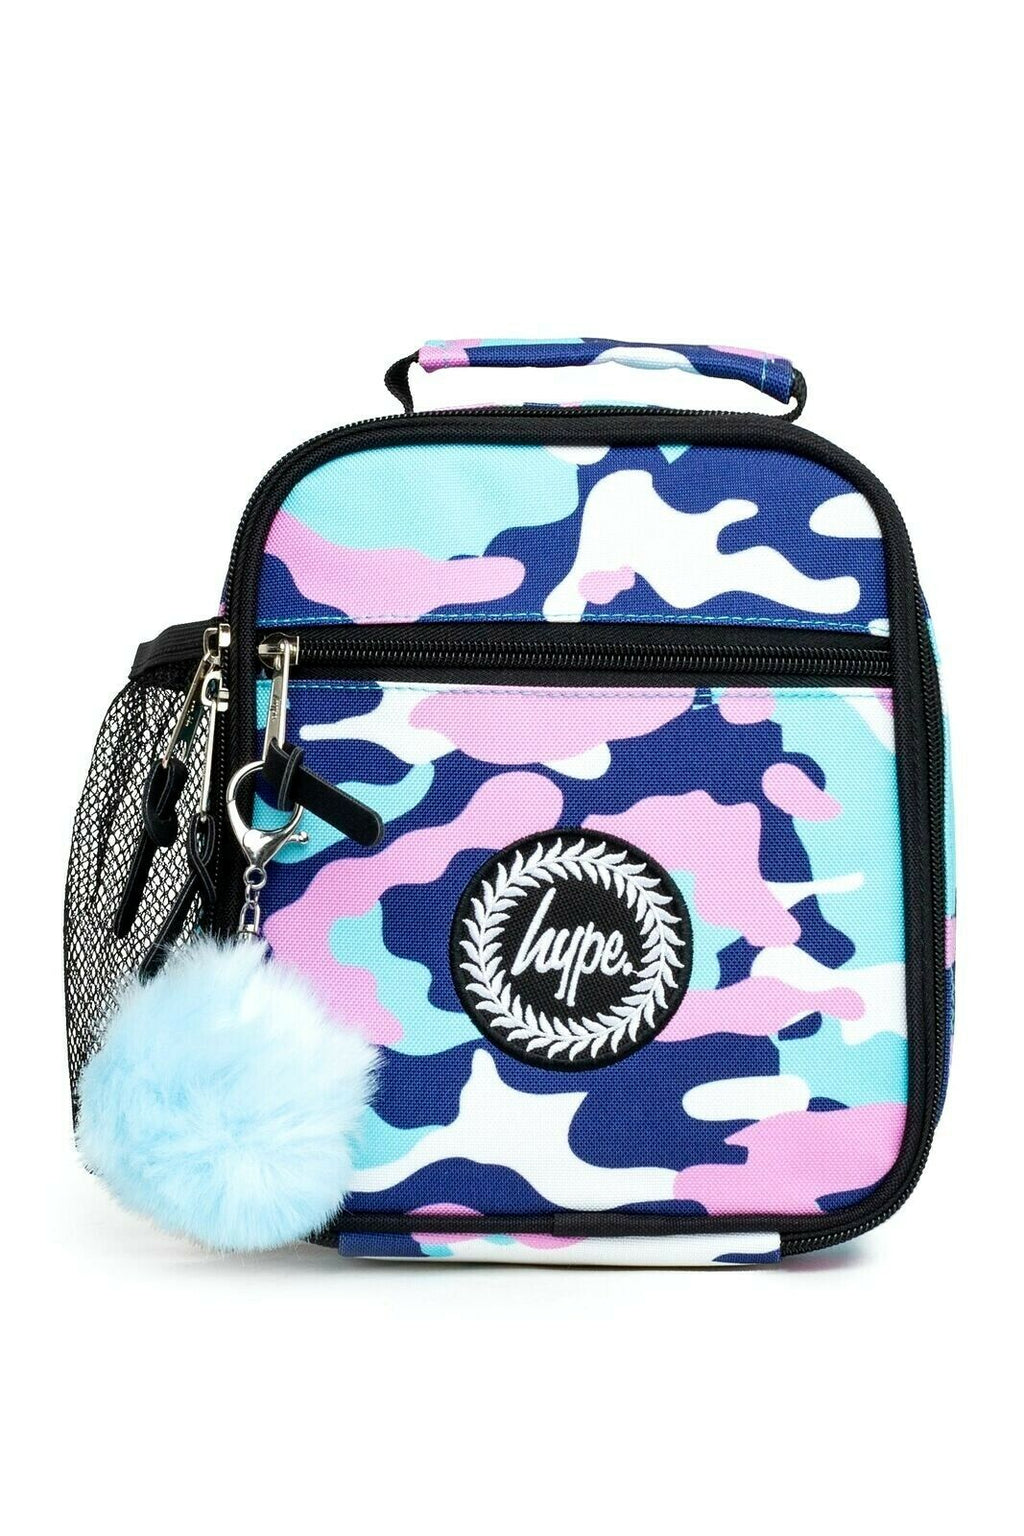 Evie Camo Lunch Box